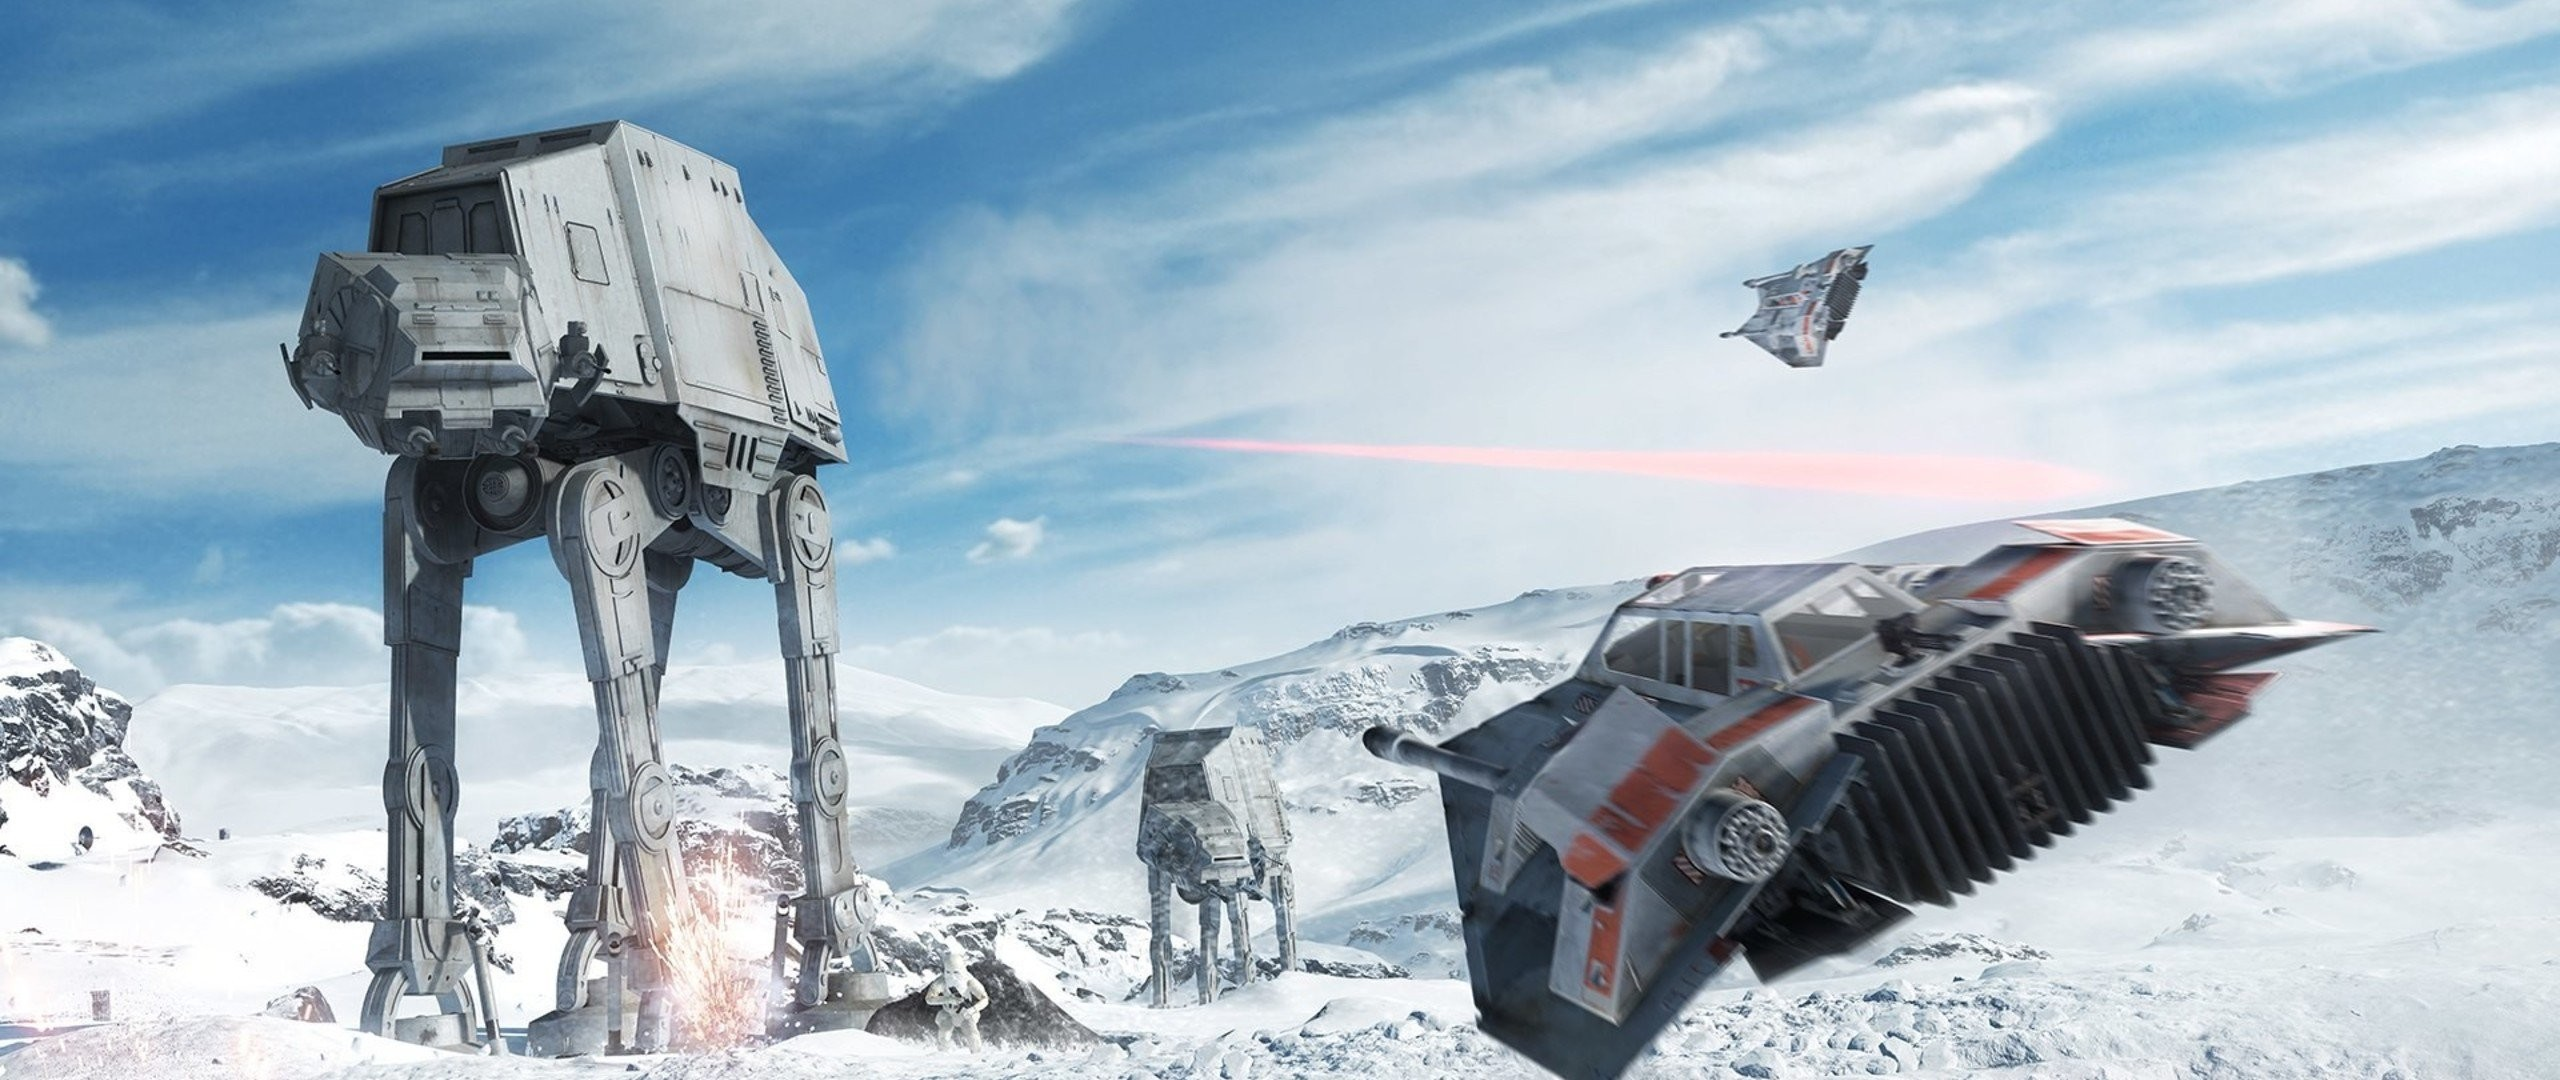 STAR WARS BATTLEFRONT sci-fi 1swbattlefront action fighting futuristic  shooter wallpaper     931354   WallpaperUP